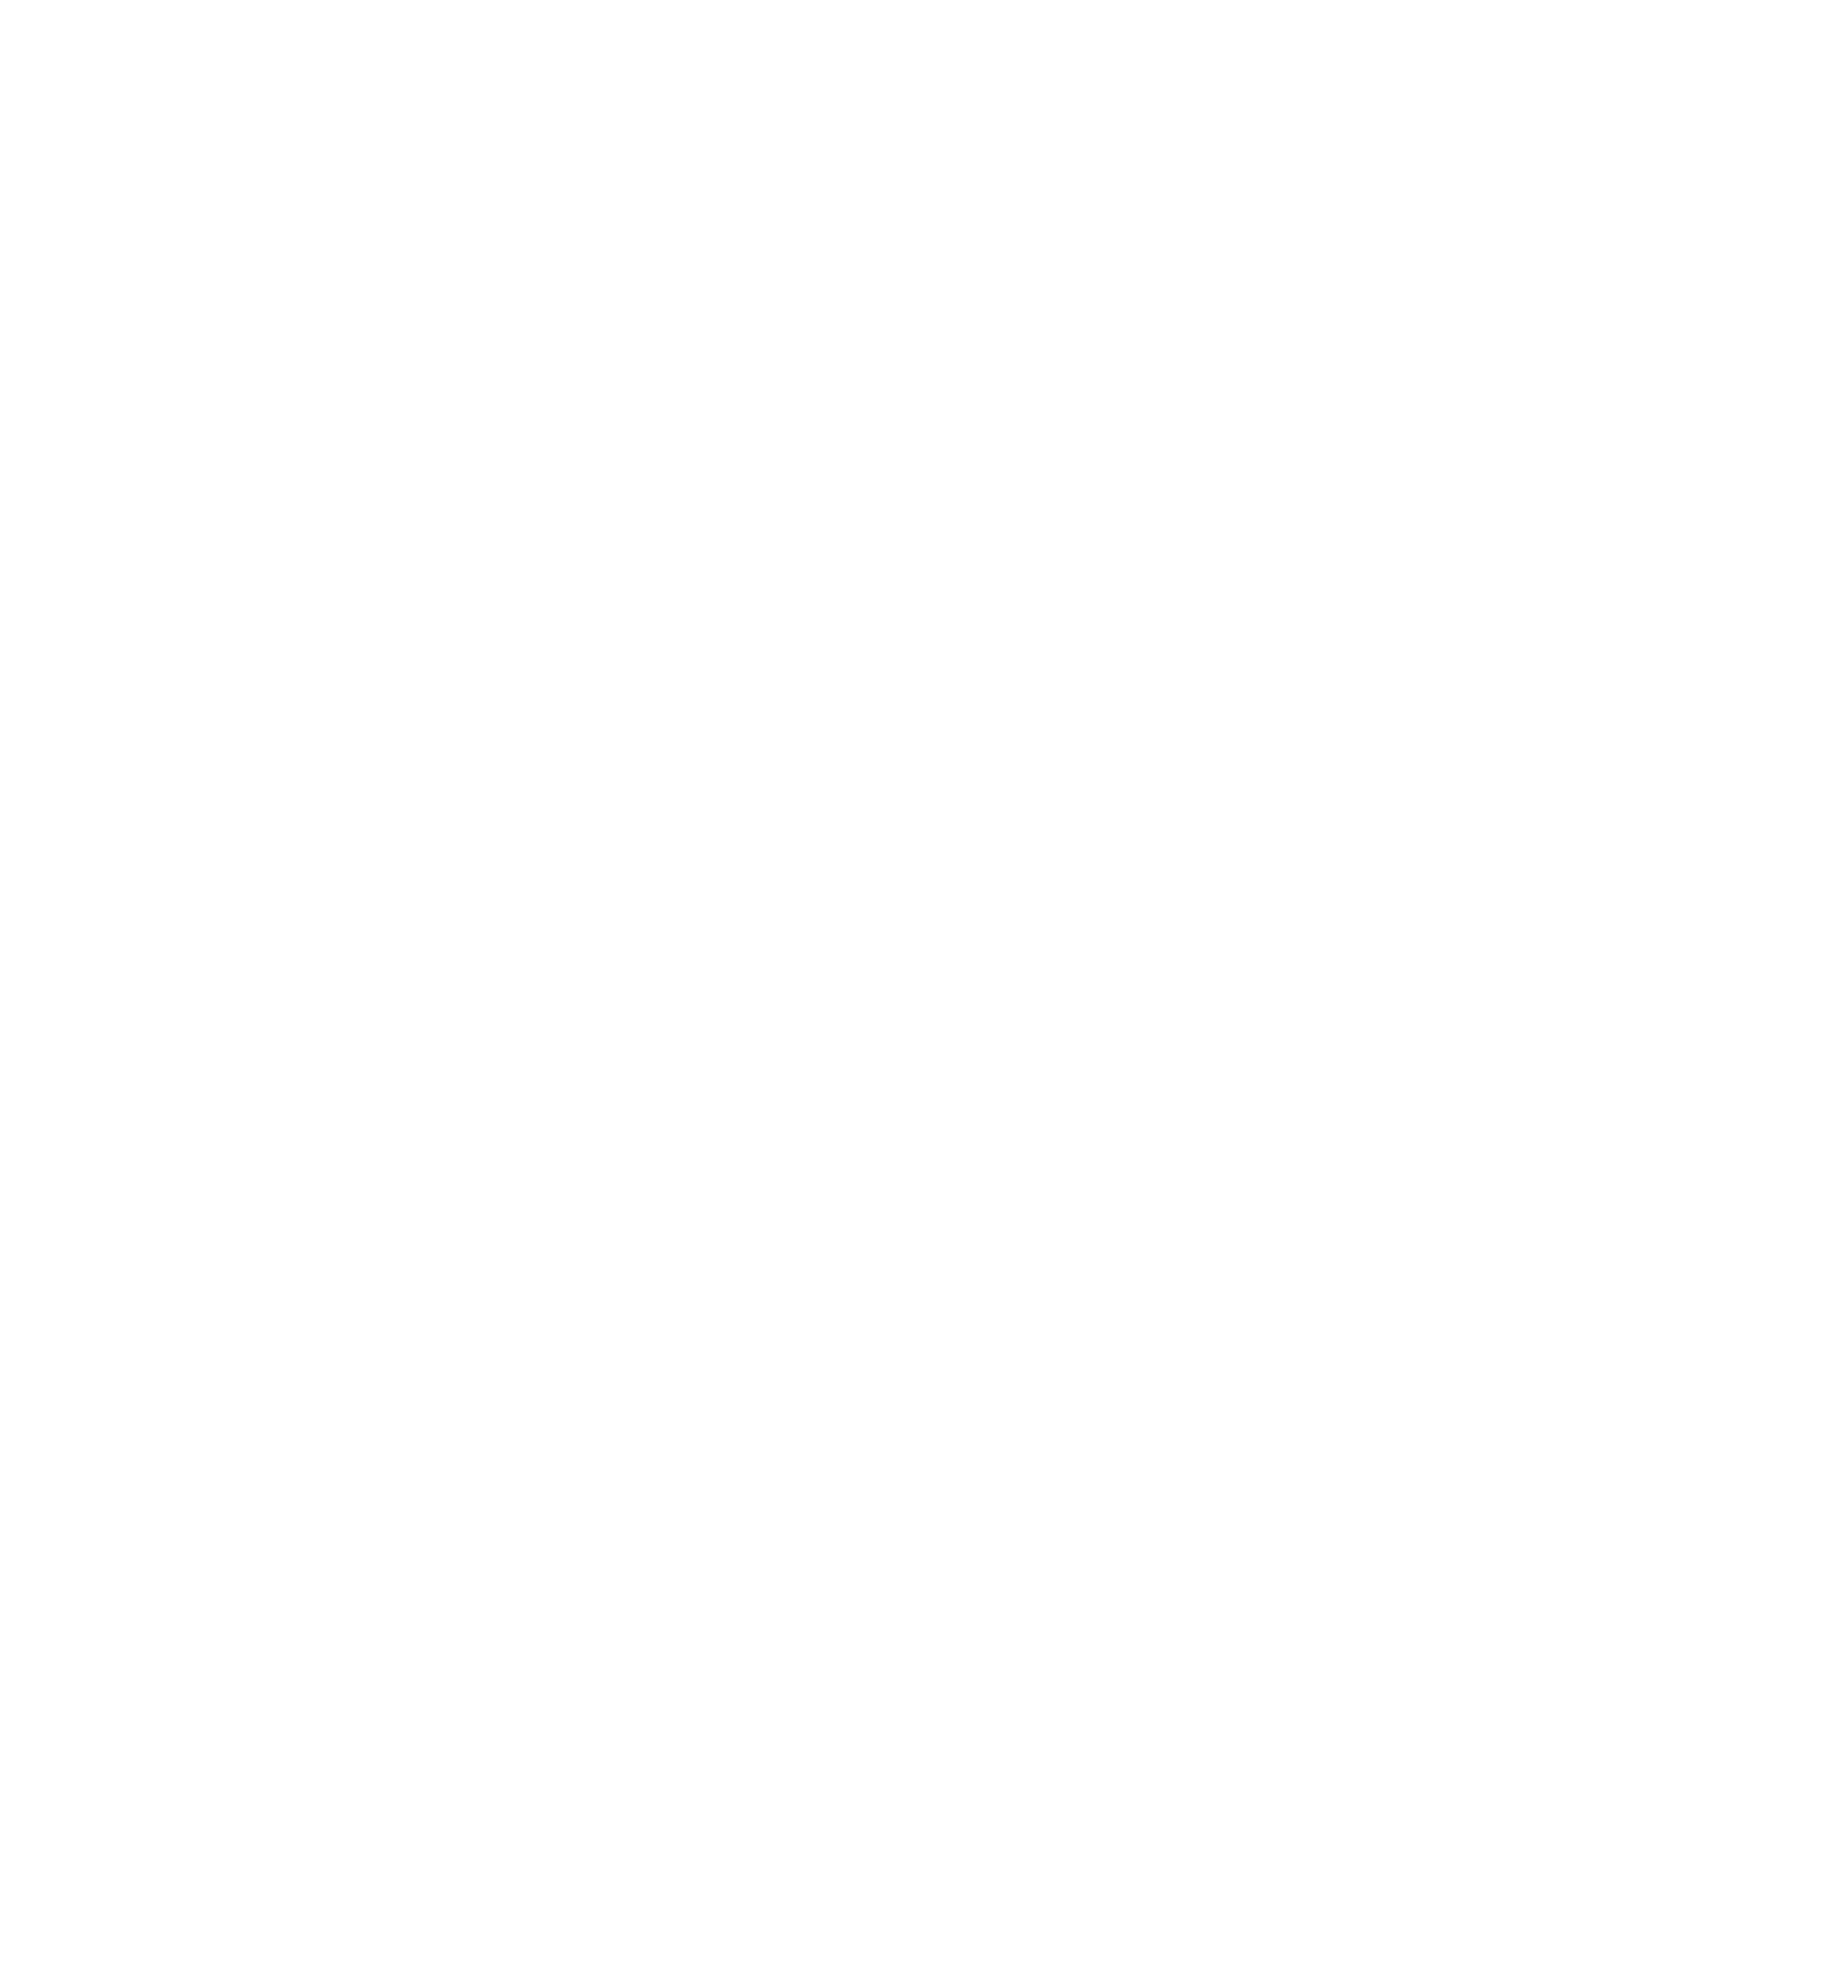 November 29, 2018 Golden Door Award Gala